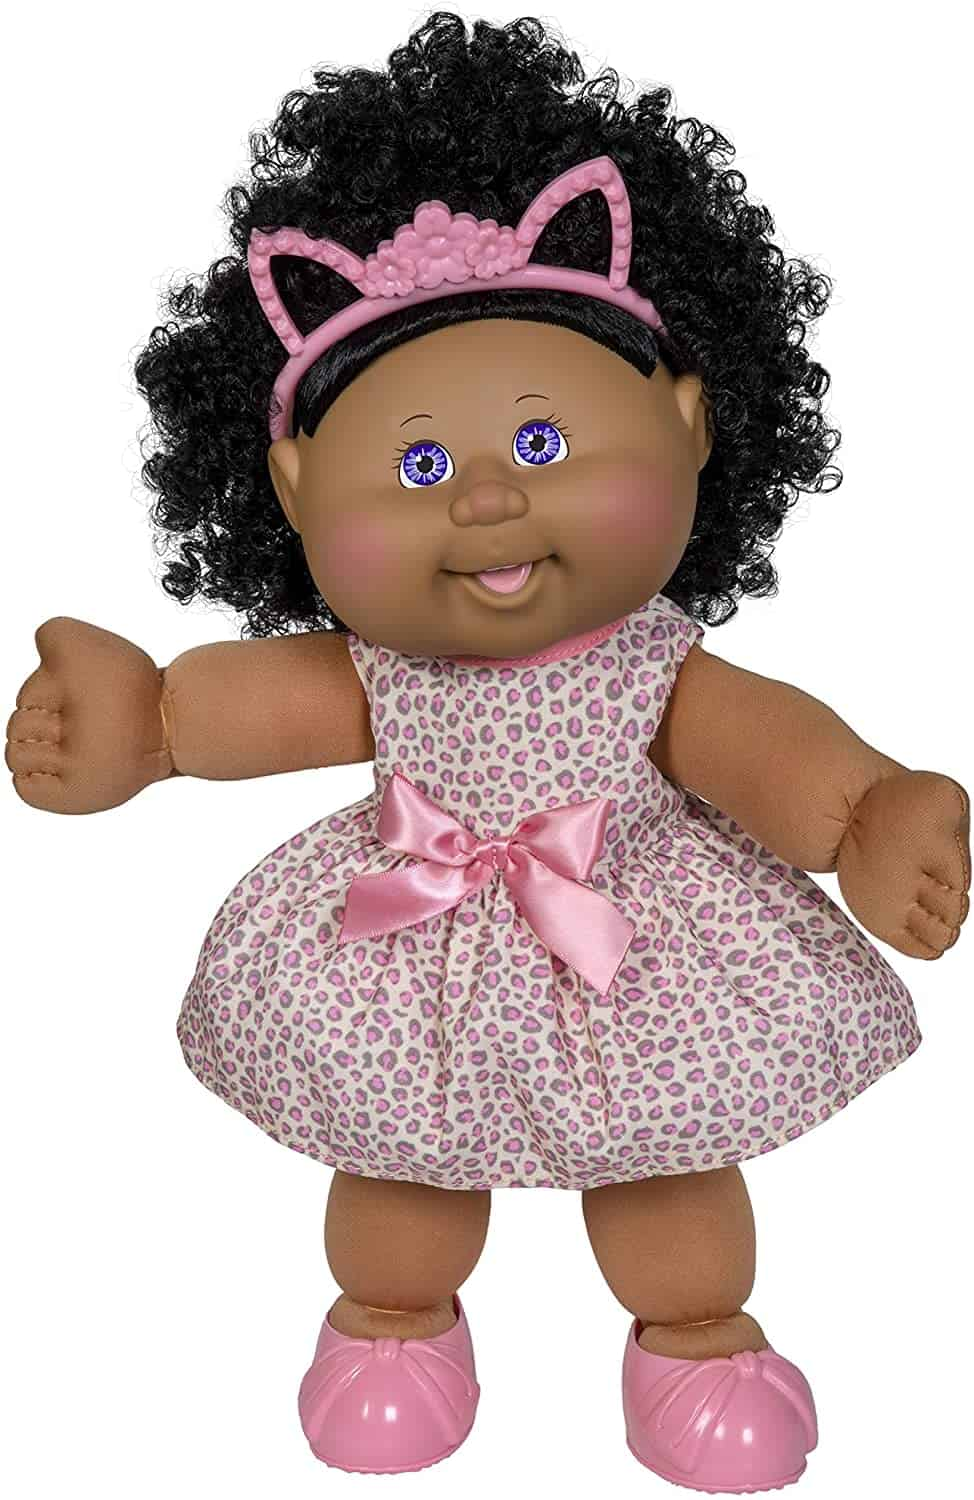 Cabbage Patch Kids Girl in Kitty Outfit,14